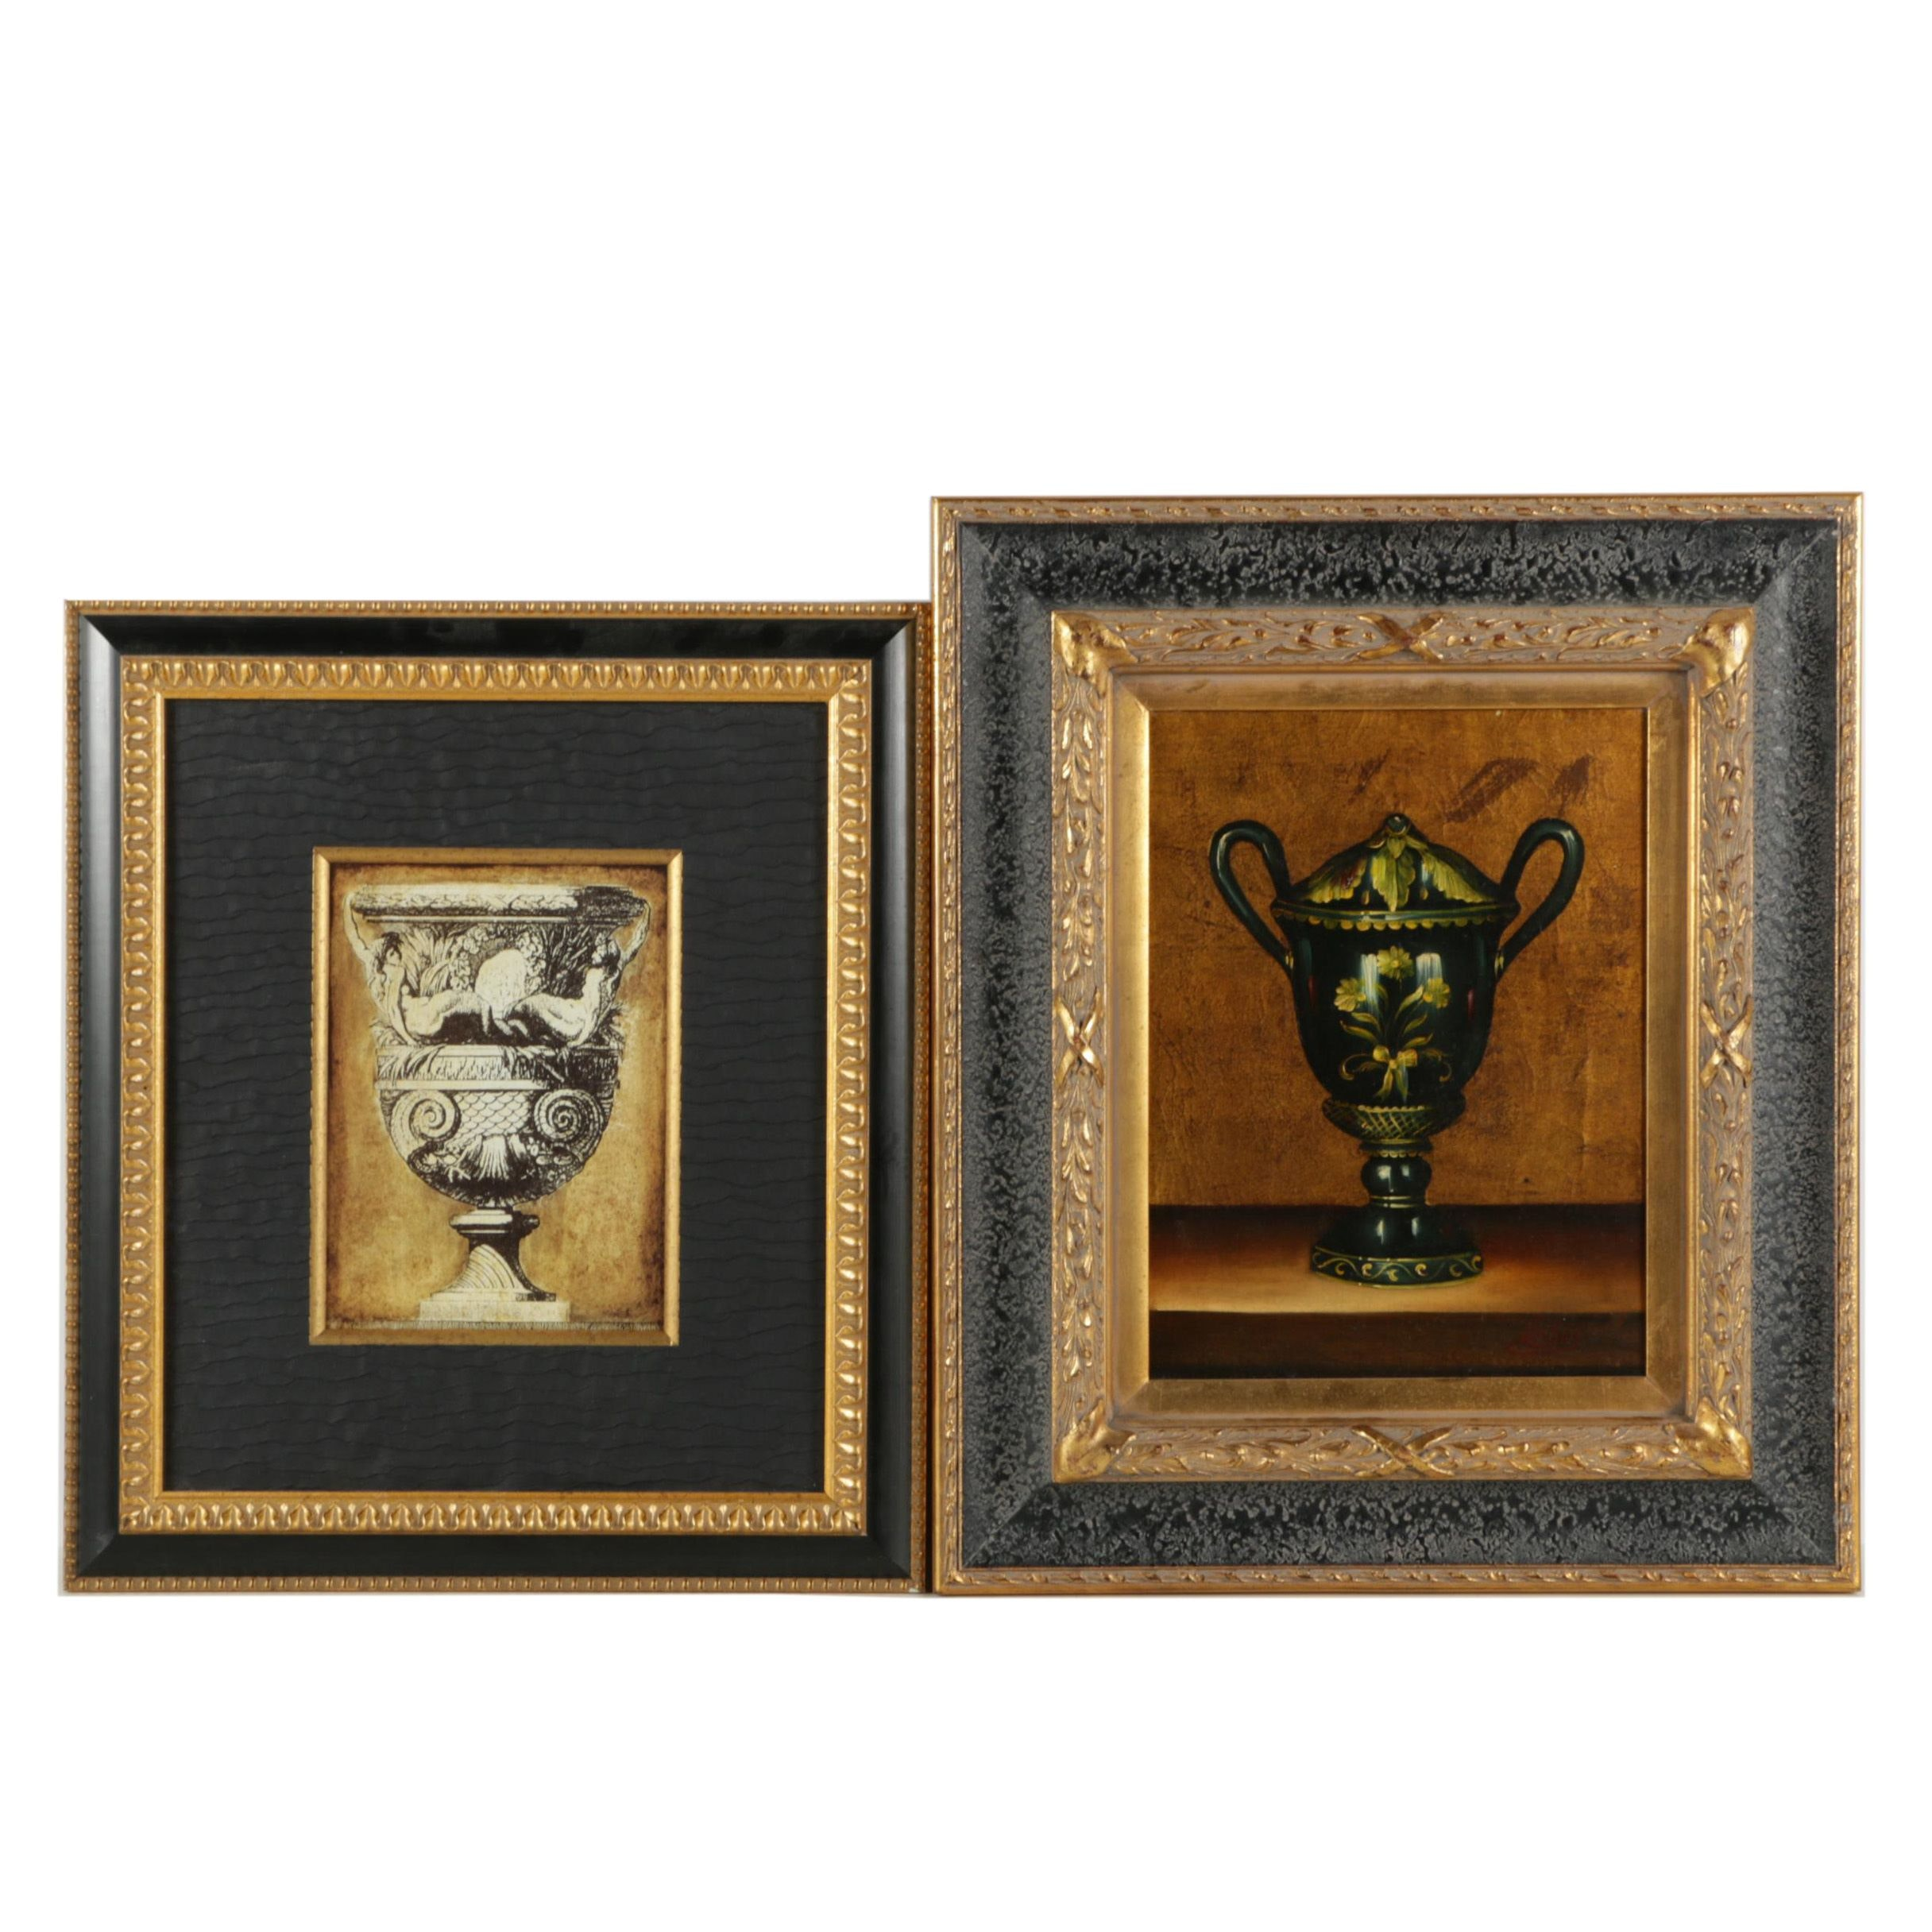 Pair of Urn Themed Wall Decor